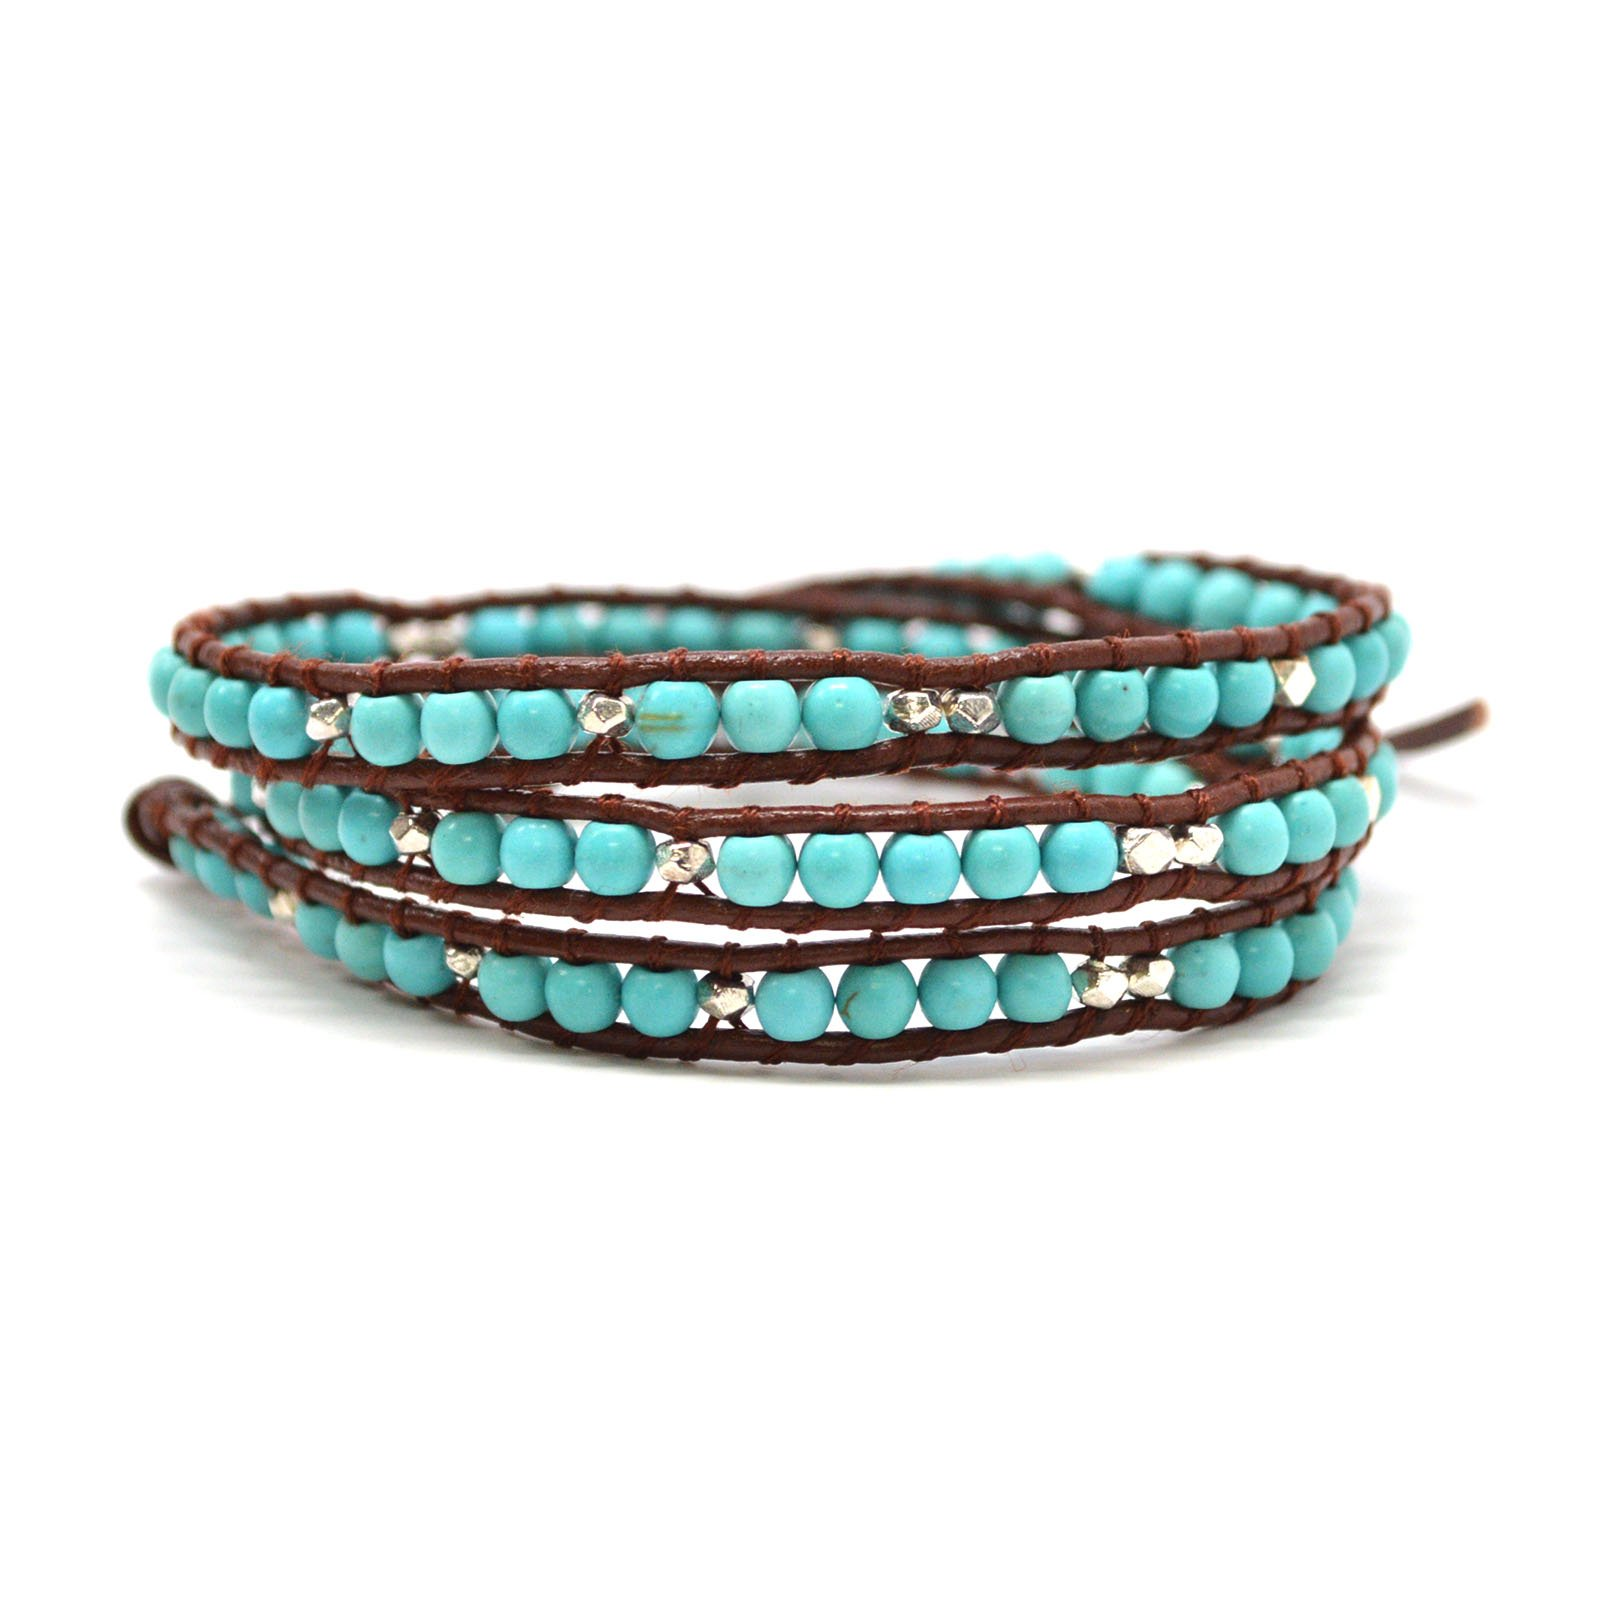 Trendy Turquoise and Metallic Beaded Leather Wrap Bohemian Style Hipster Friendship Bracelet (23 Inches) by Baubles N Gems